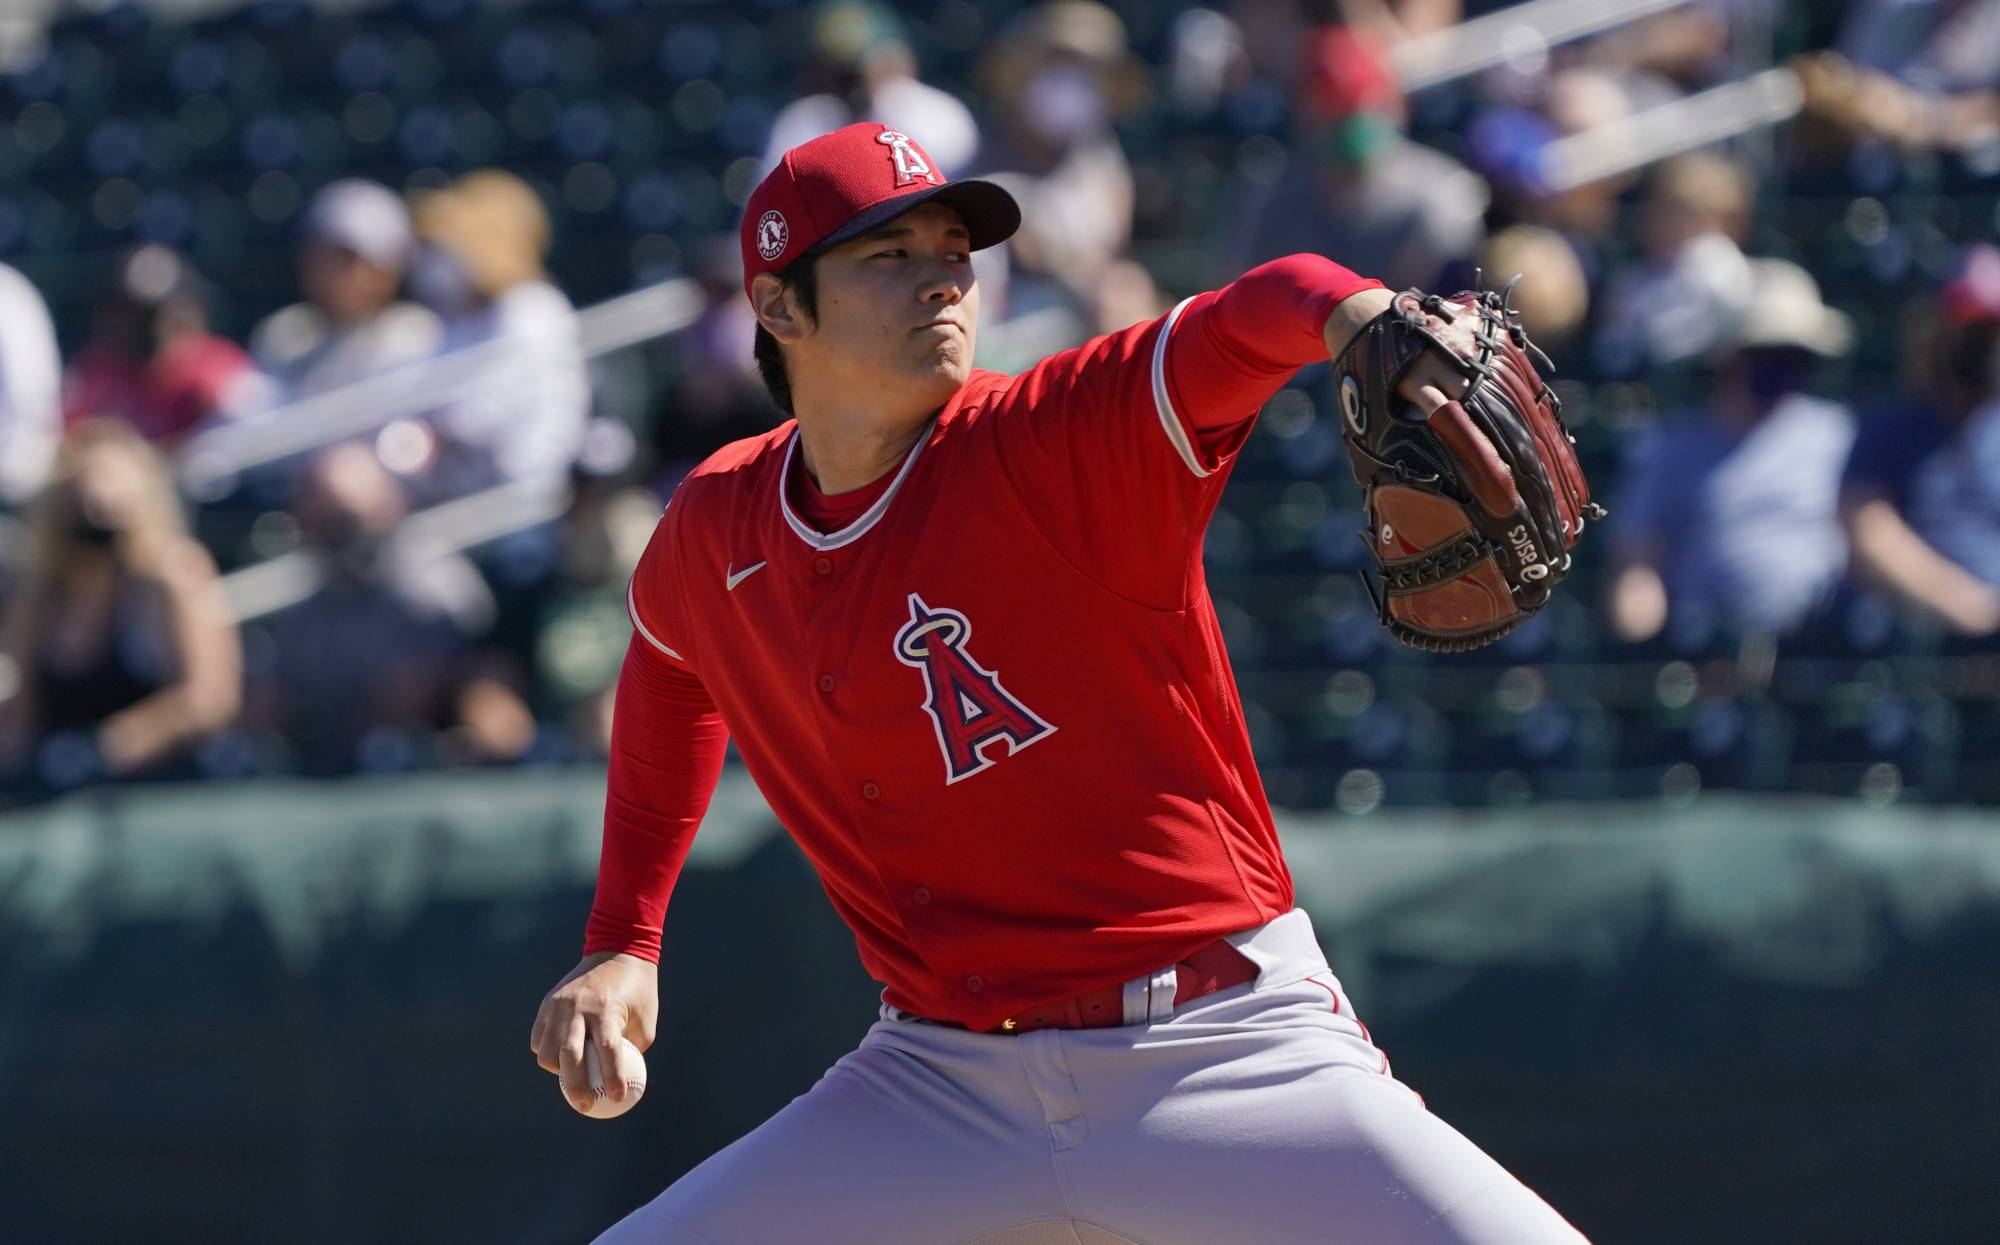 The Angels' Shohei Ohtani pitches against the A's during a spring training game in Mesa, Arizona, on Friday. | USA TODAY / VIA REUTERS